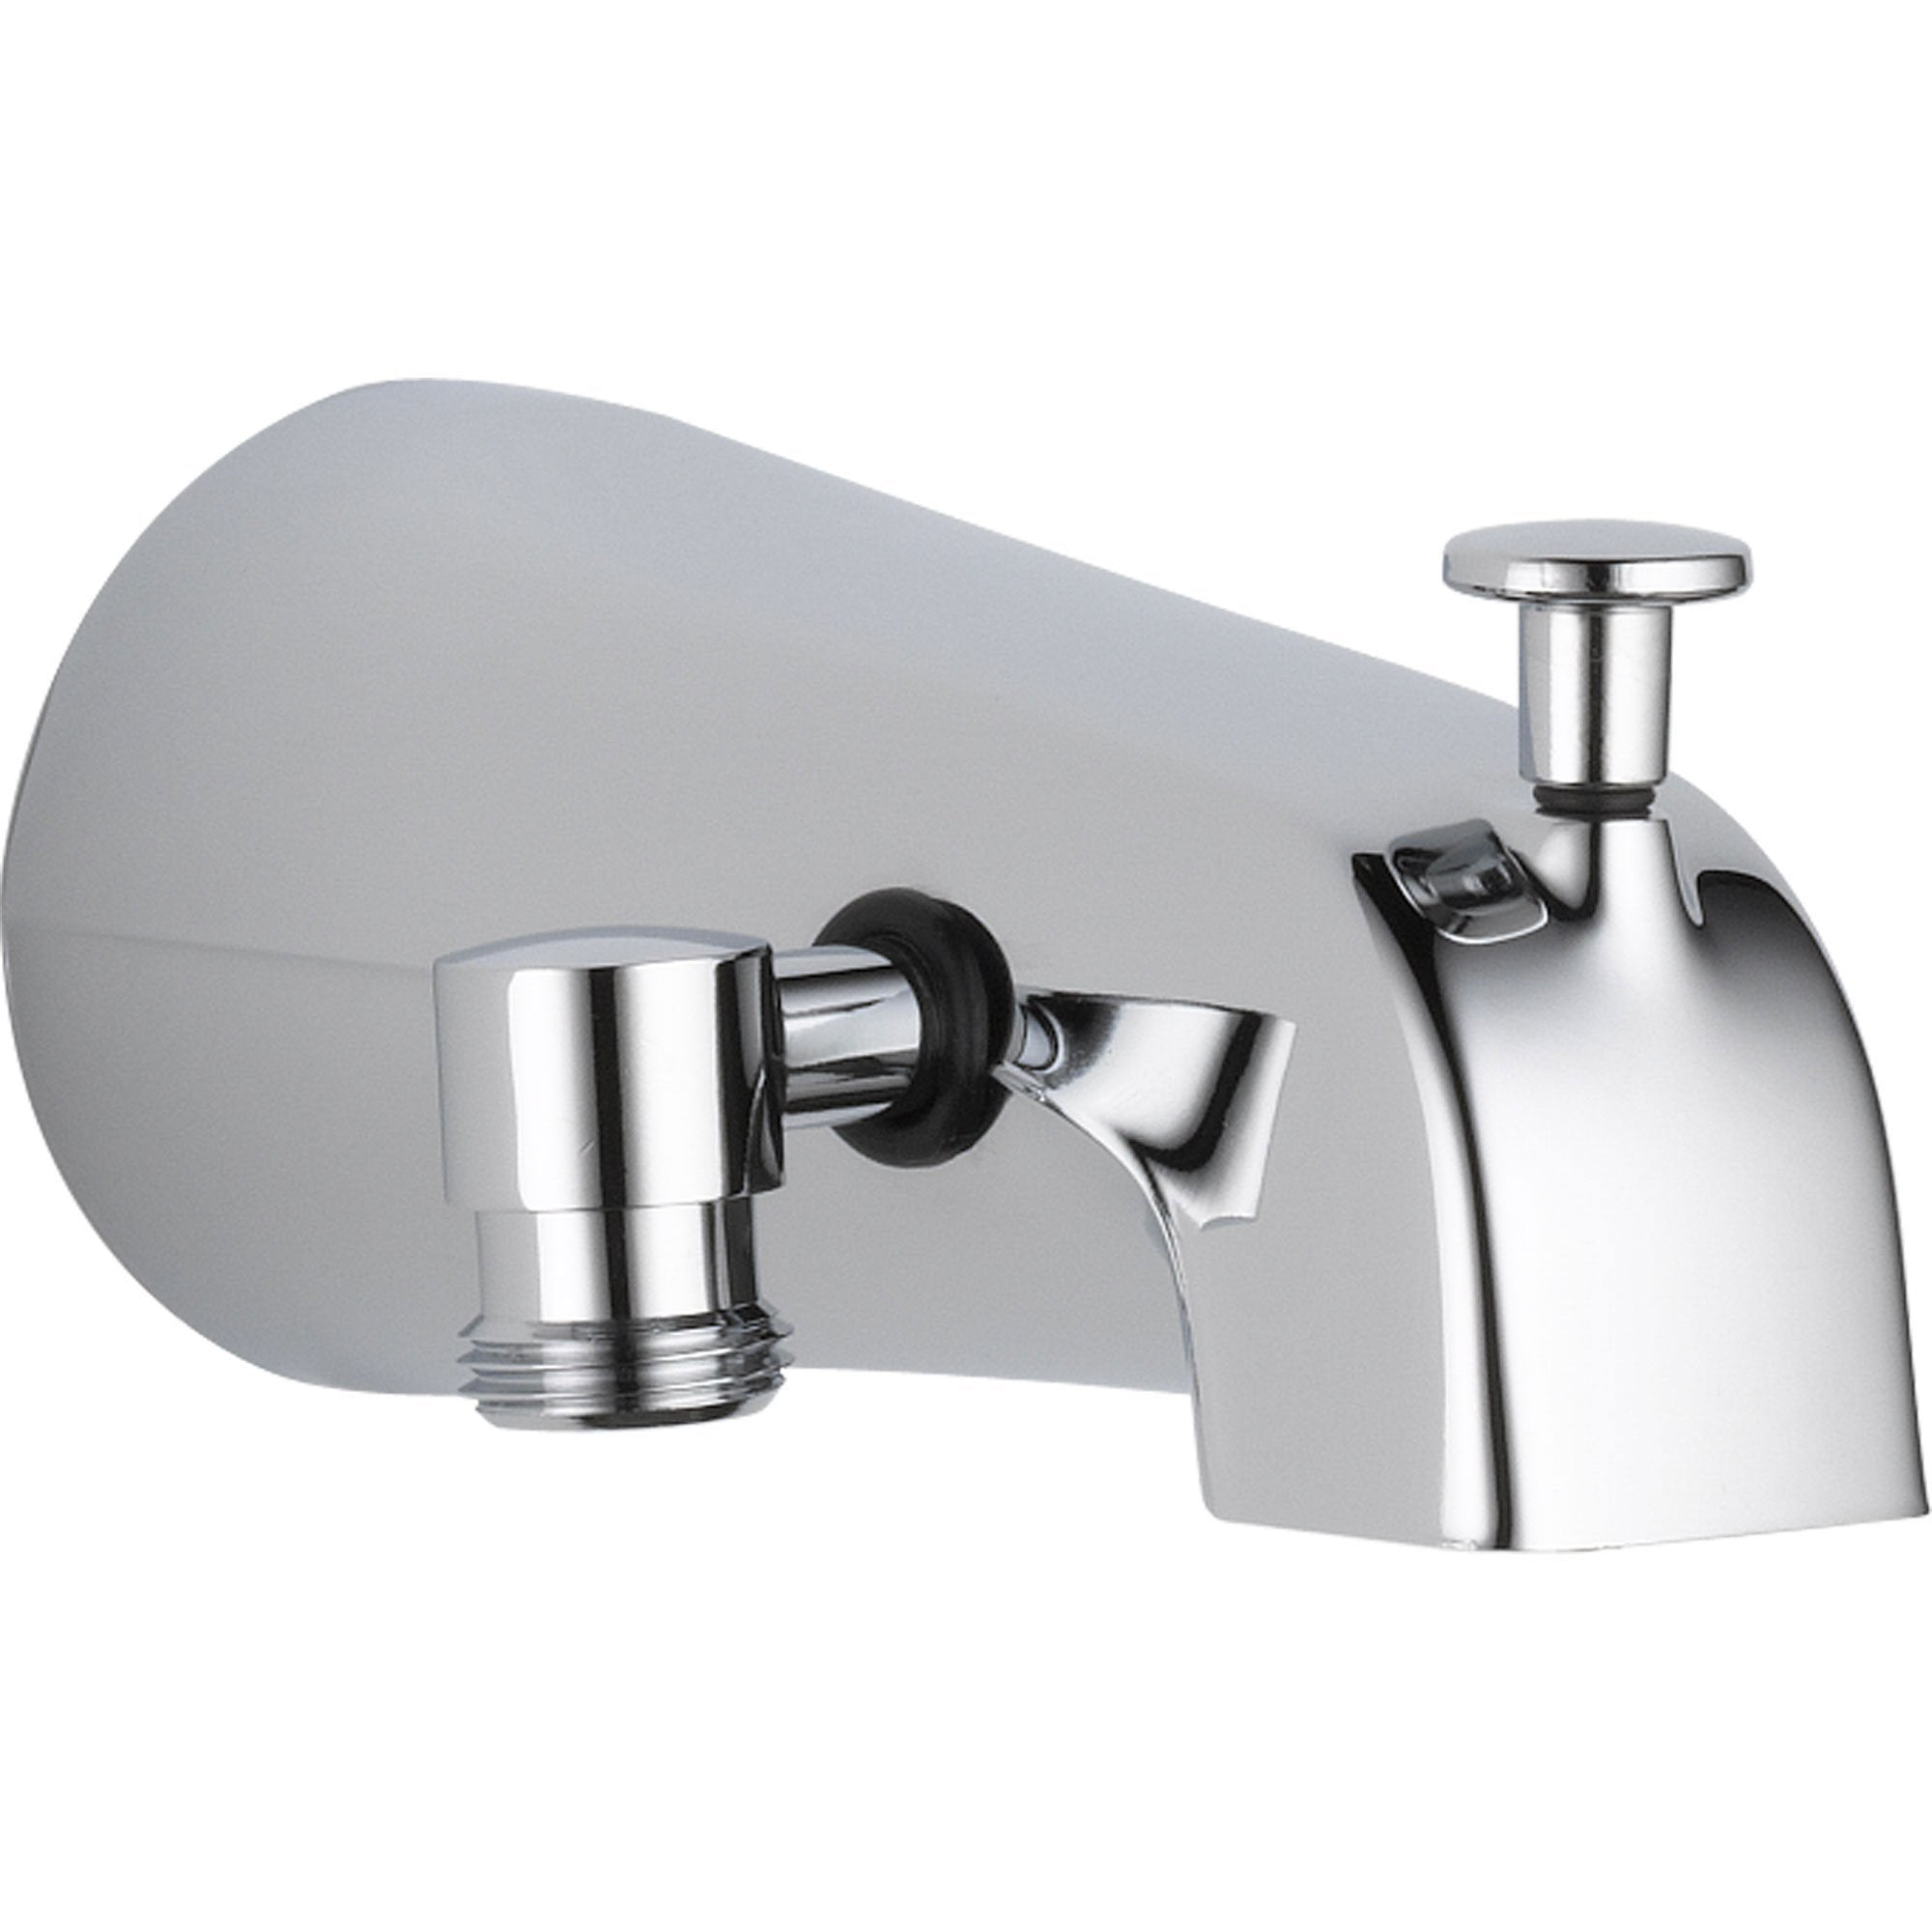 Delta 5.94 In. Long Pull-up Diverter Tub Spout in Chrome 561300